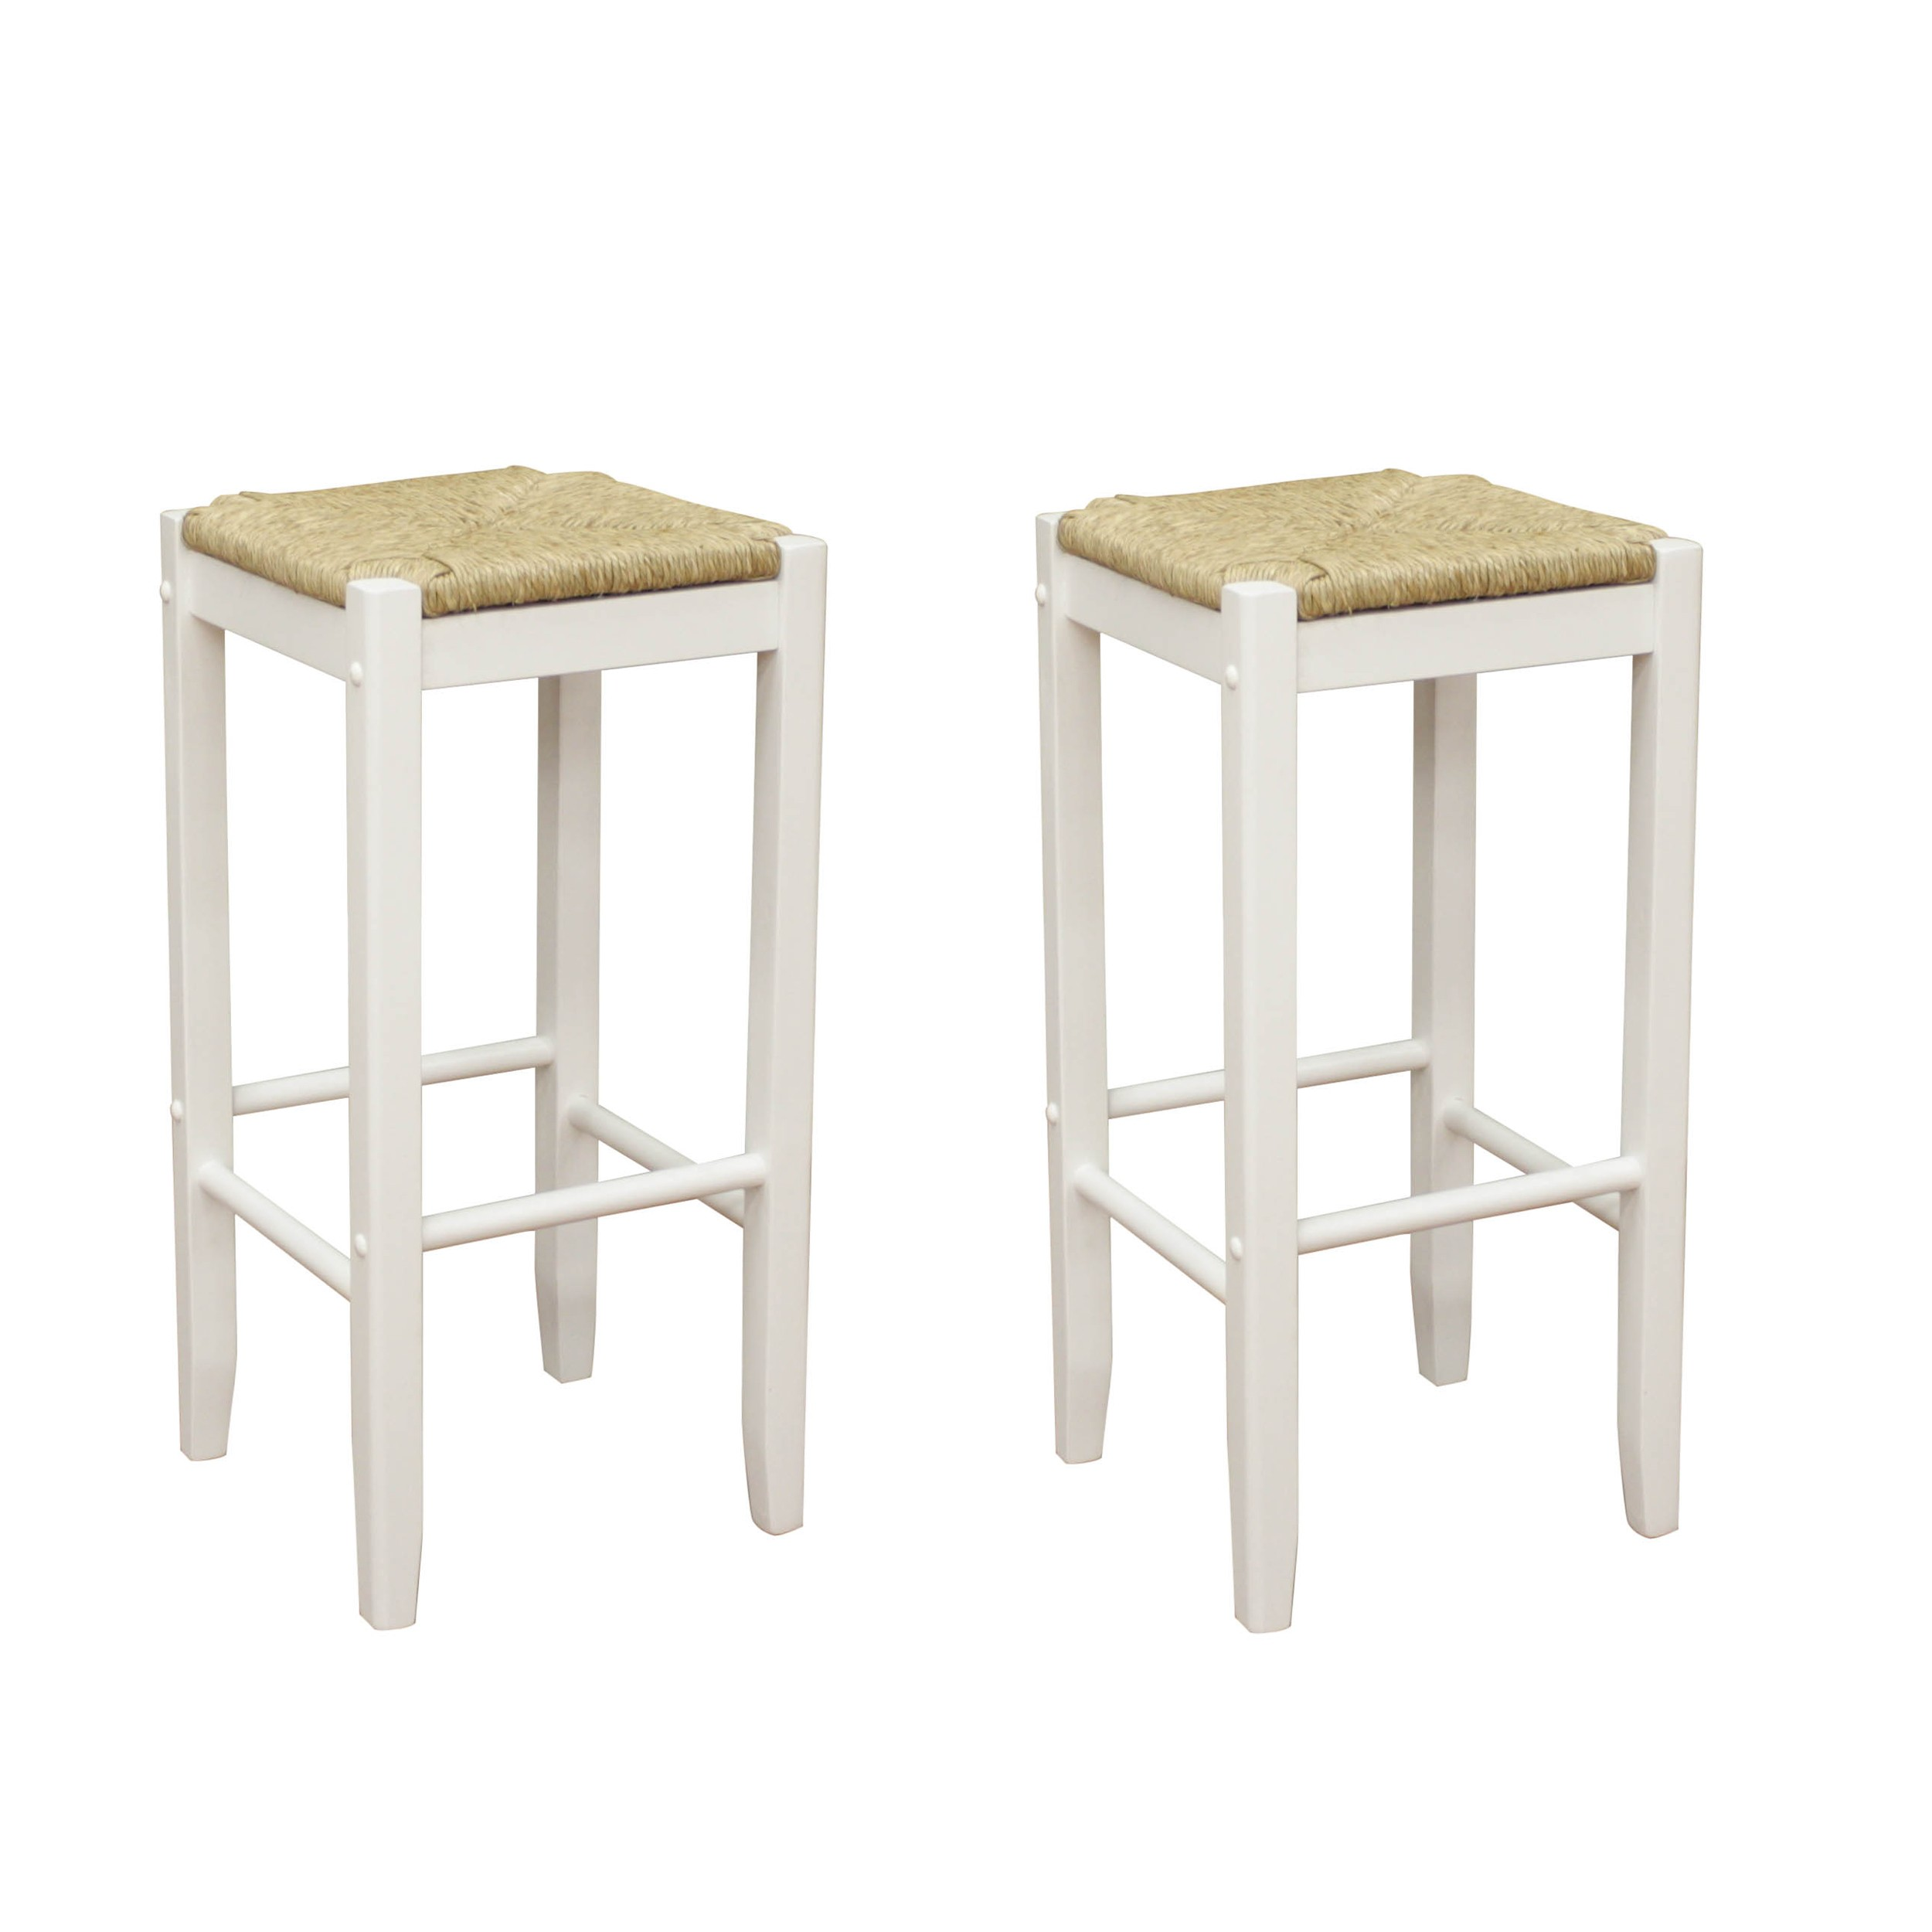 Counter Height Bar Stool | Seagrass Bar Stools | Counter Stools with Backs